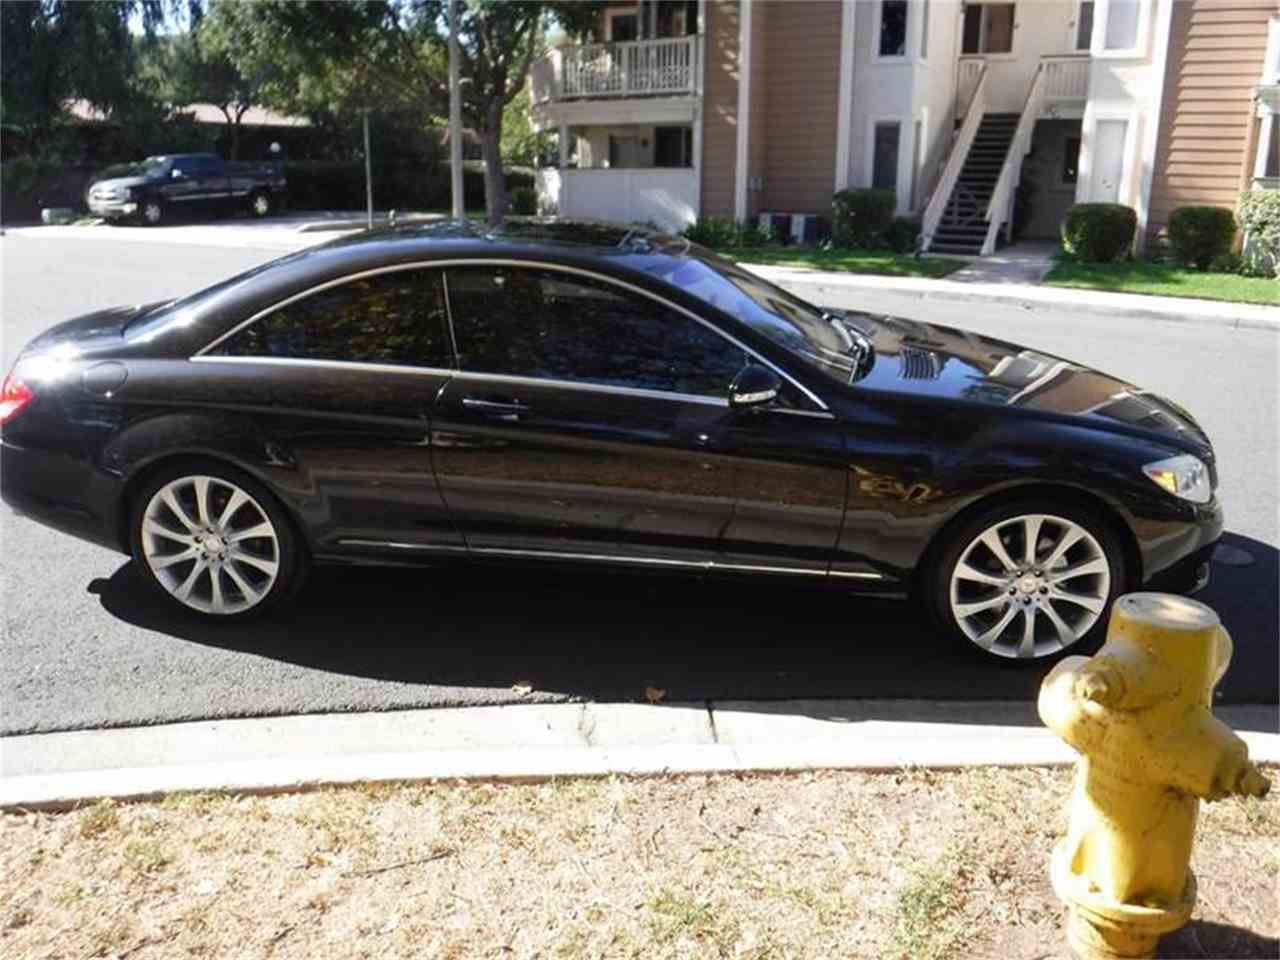 Large Picture of 2007 Mercedes-Benz CL-Class located in Thousand Oaks California - $15,995.00 - MAMQ